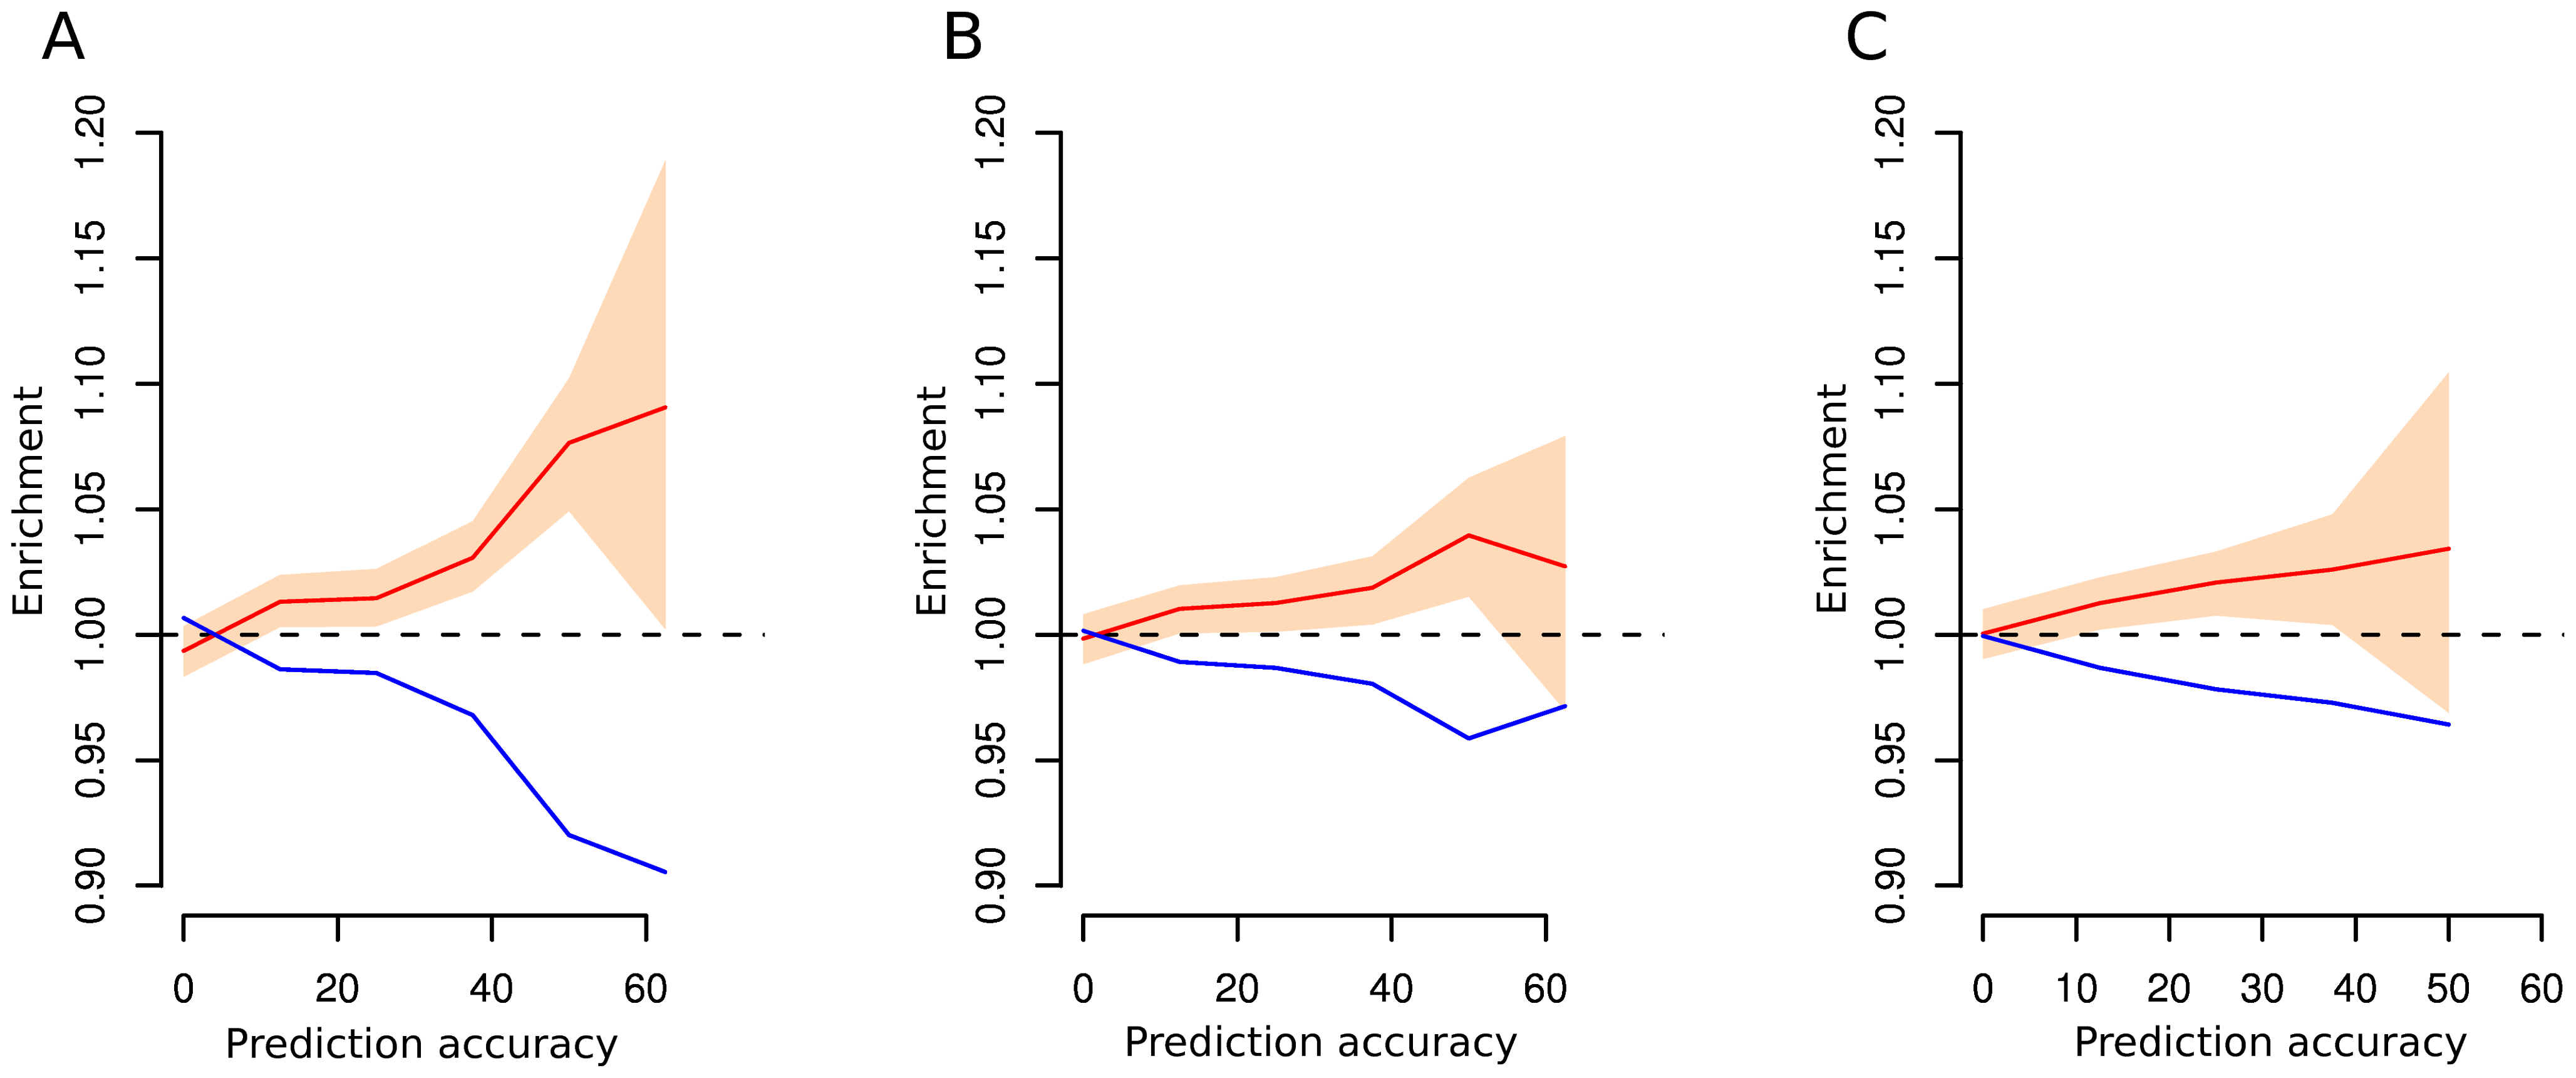 Enrichment of SNPs for different values of prediction accuracy computed on distinct models.